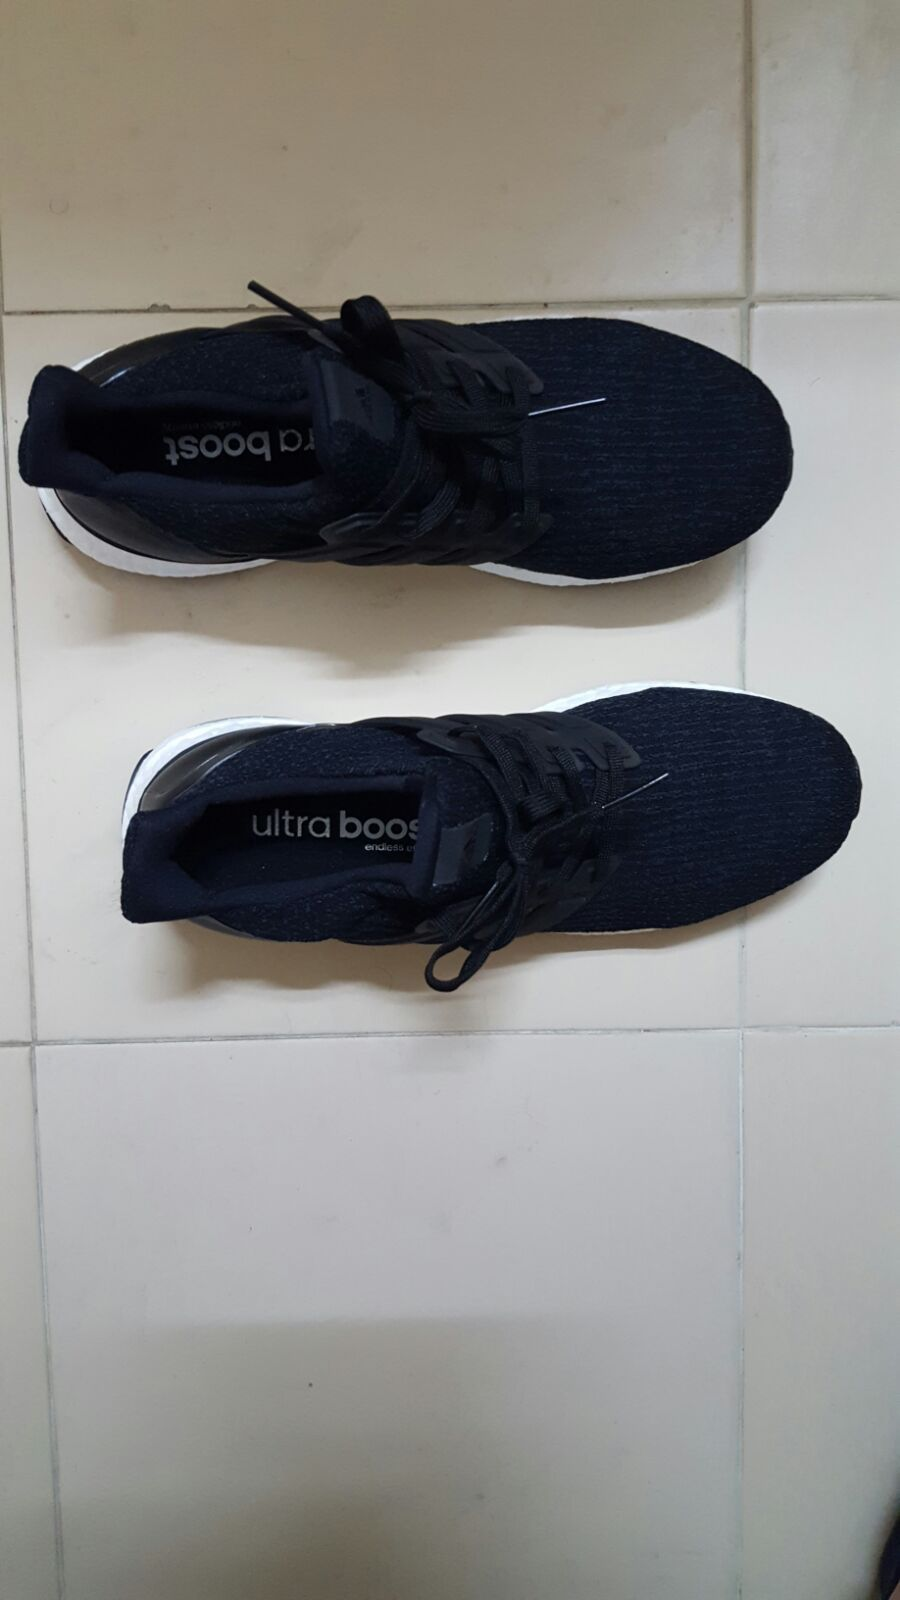 4b5299f90 PLEASE legit check these core black ultraboost 3.0s. I m pretty sure they  are authentic but I got them in another country and I m leaving tomorrow so  in ...